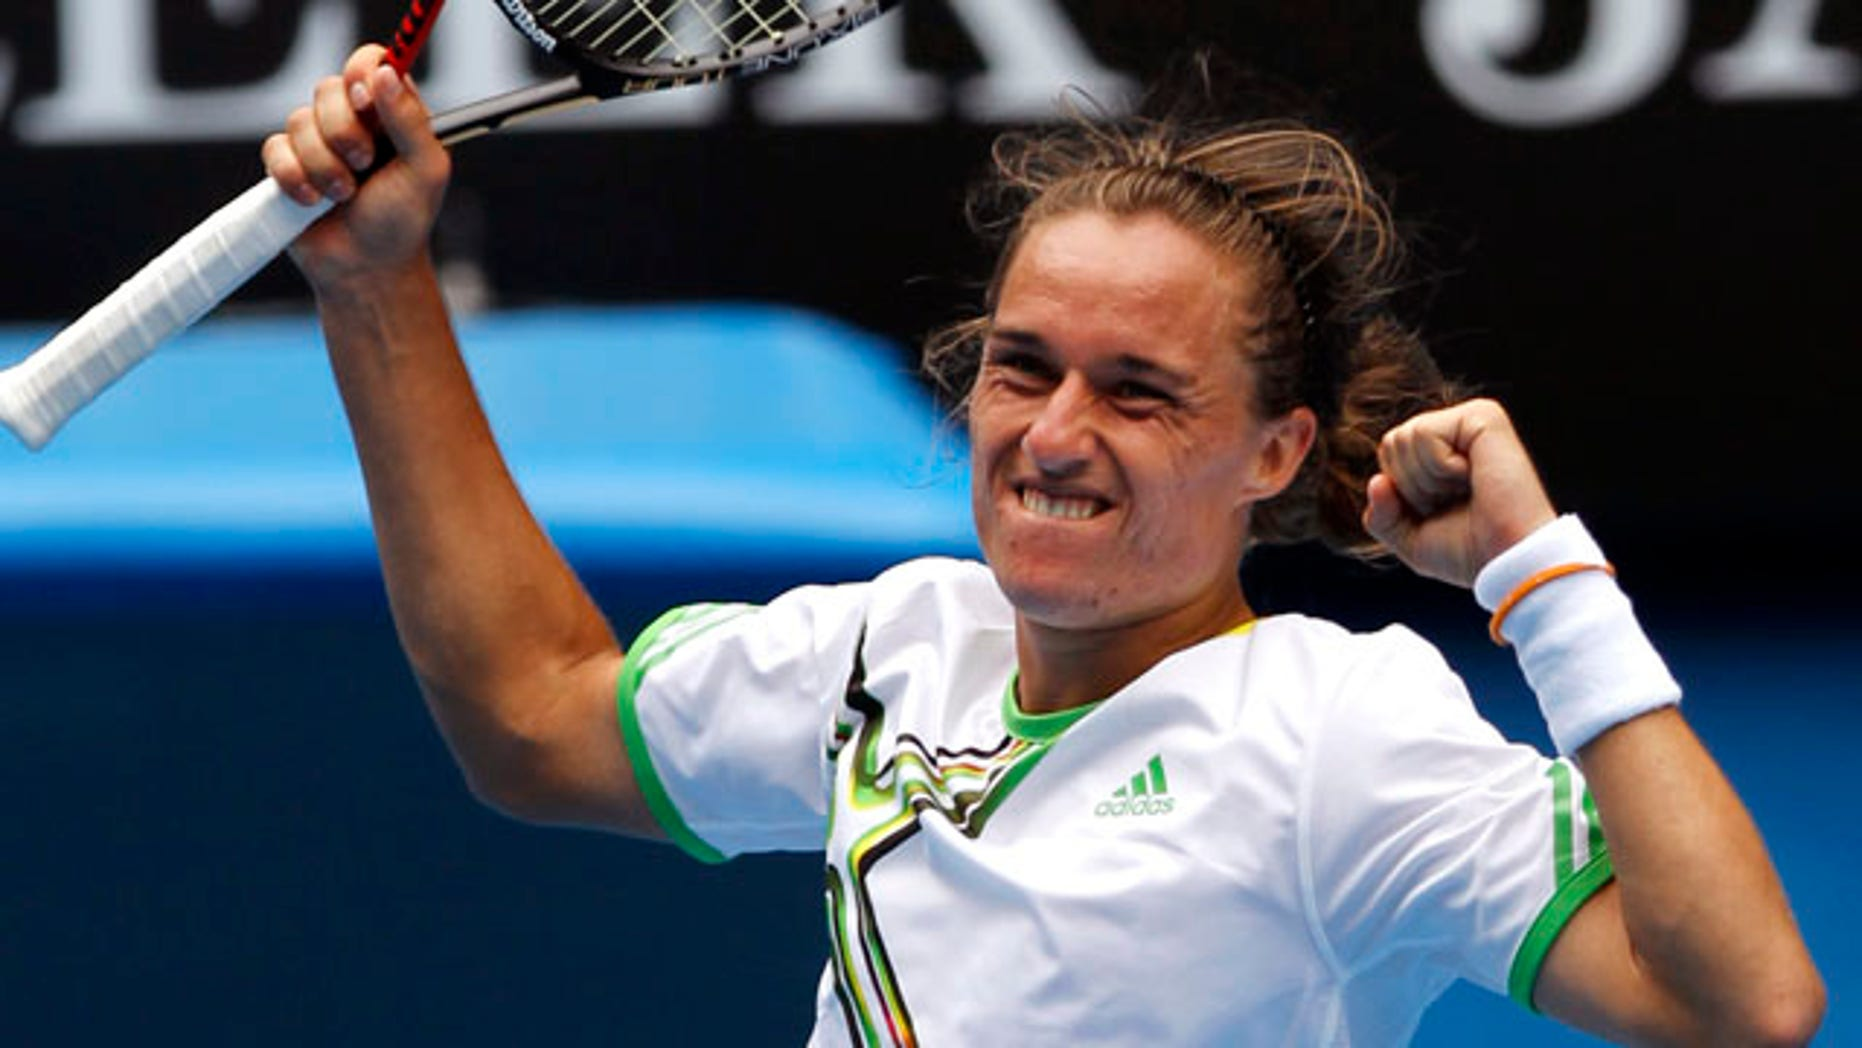 Jan. 24: Alexandr Dolgopolov of Ukraine celebrates after beating Robin Soderling of Sweden in their fourth round match at the Australian Open tennis championships in Melbourne, Australia.